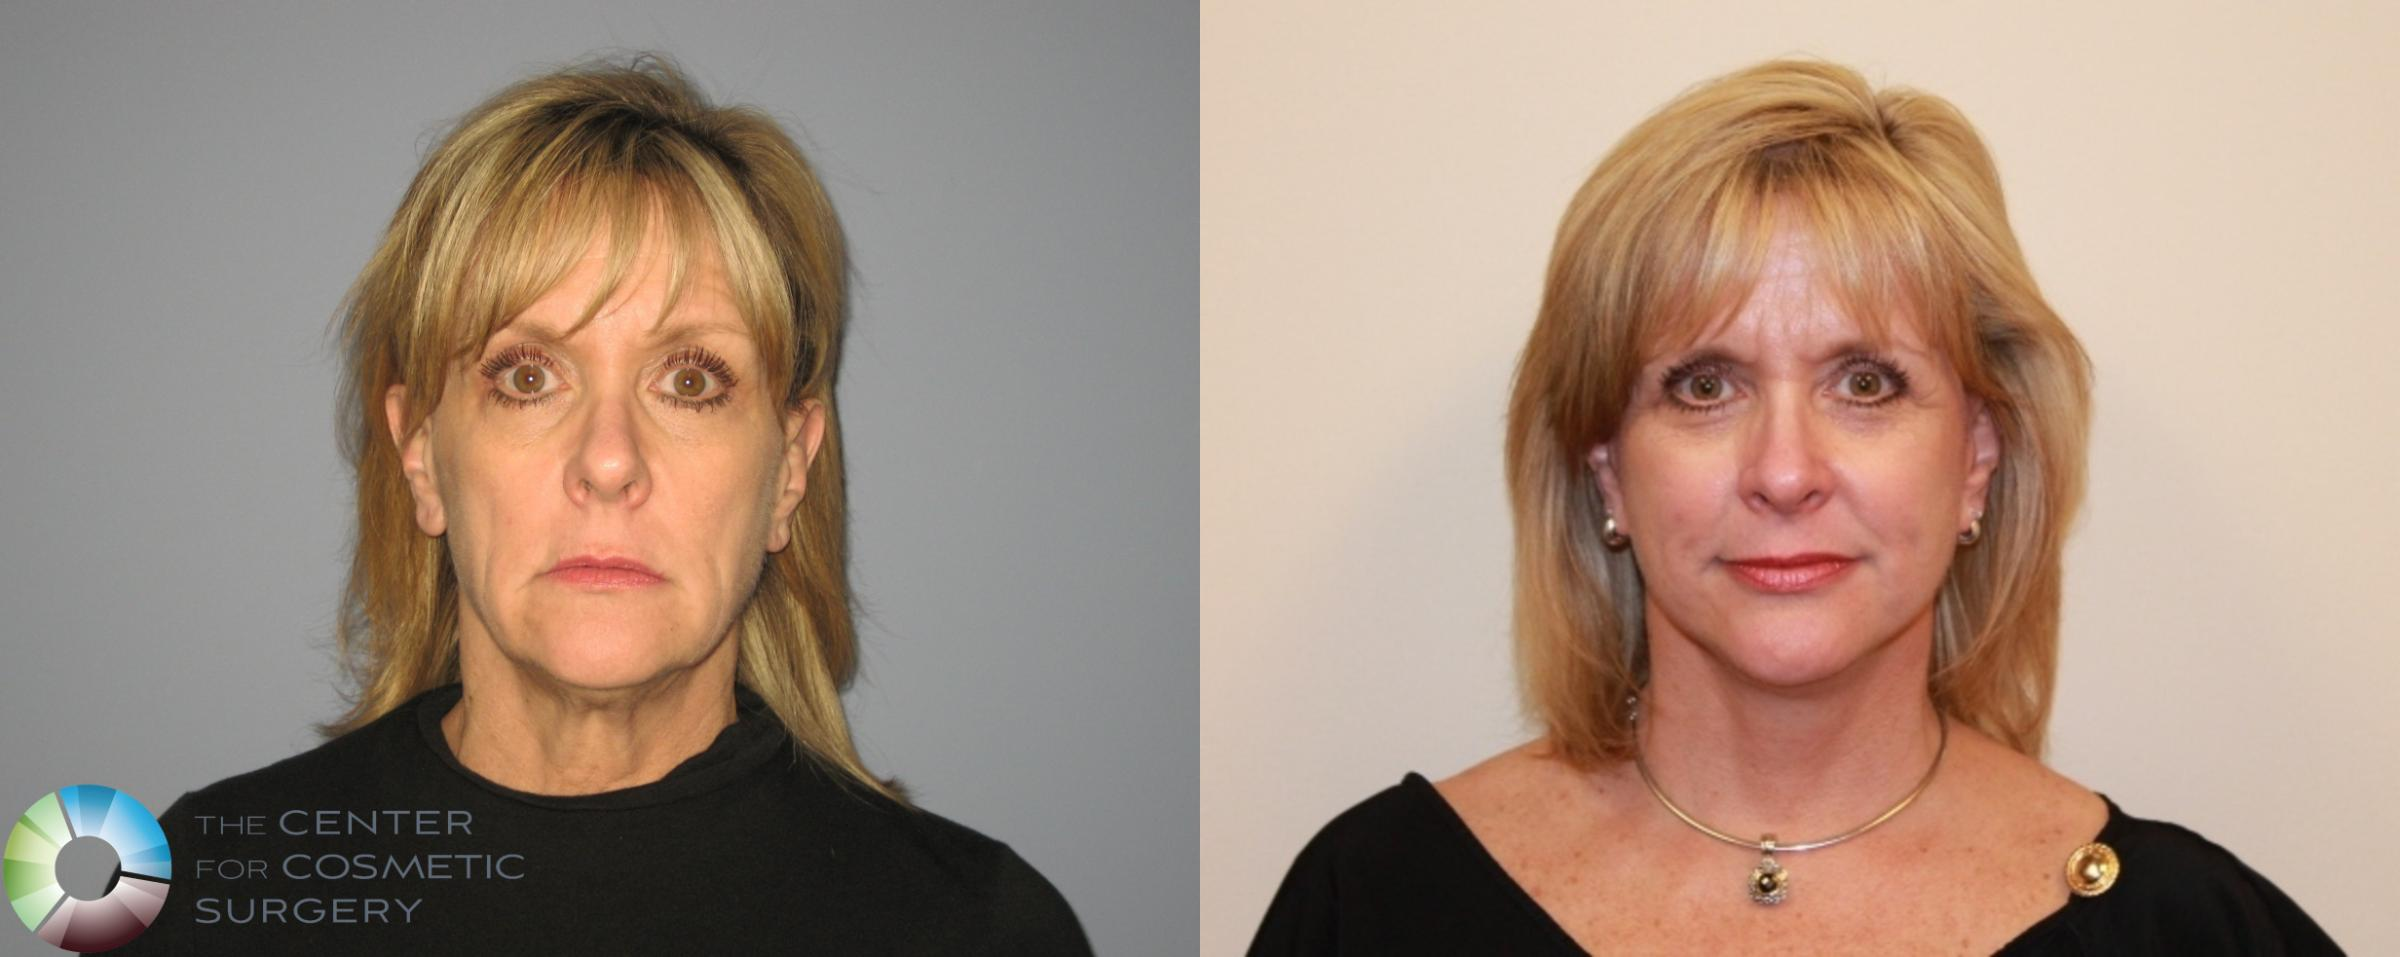 Mini Facelift Case 472 Before & After View #1 | Golden, CO | The Center for Cosmetic Surgery